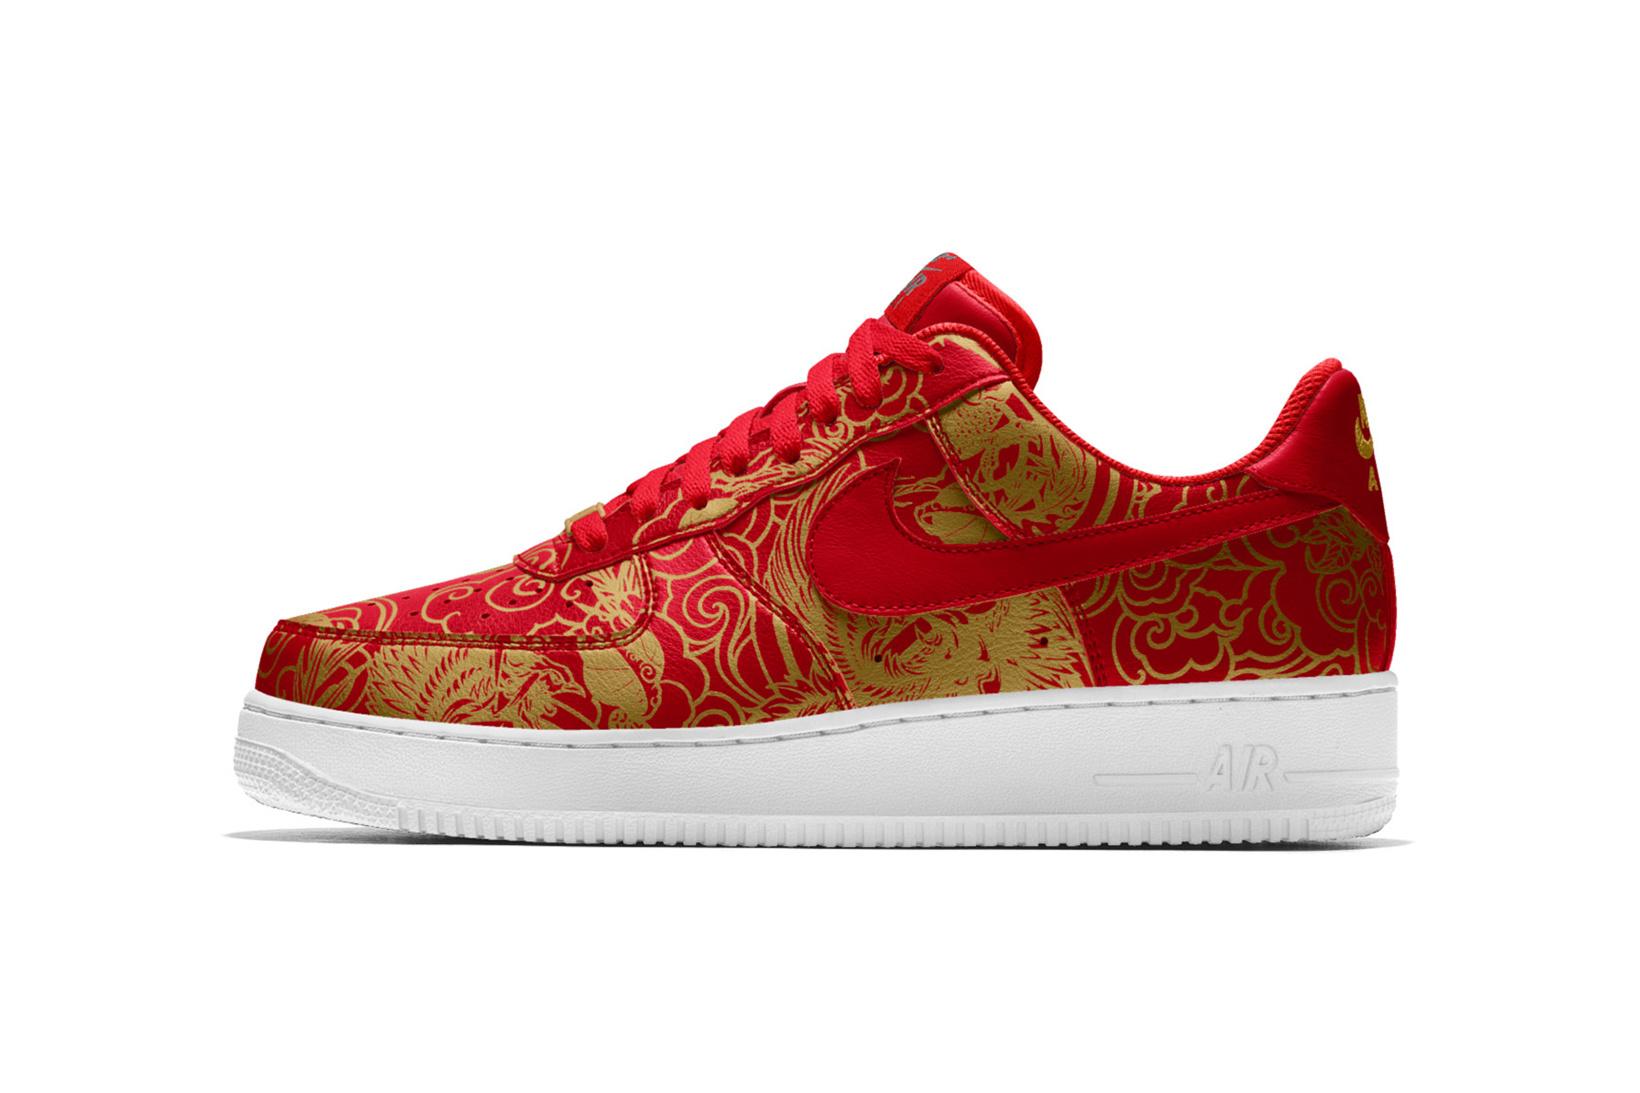 NikeID Brings in Chinese New Year with Custom Air Force 1